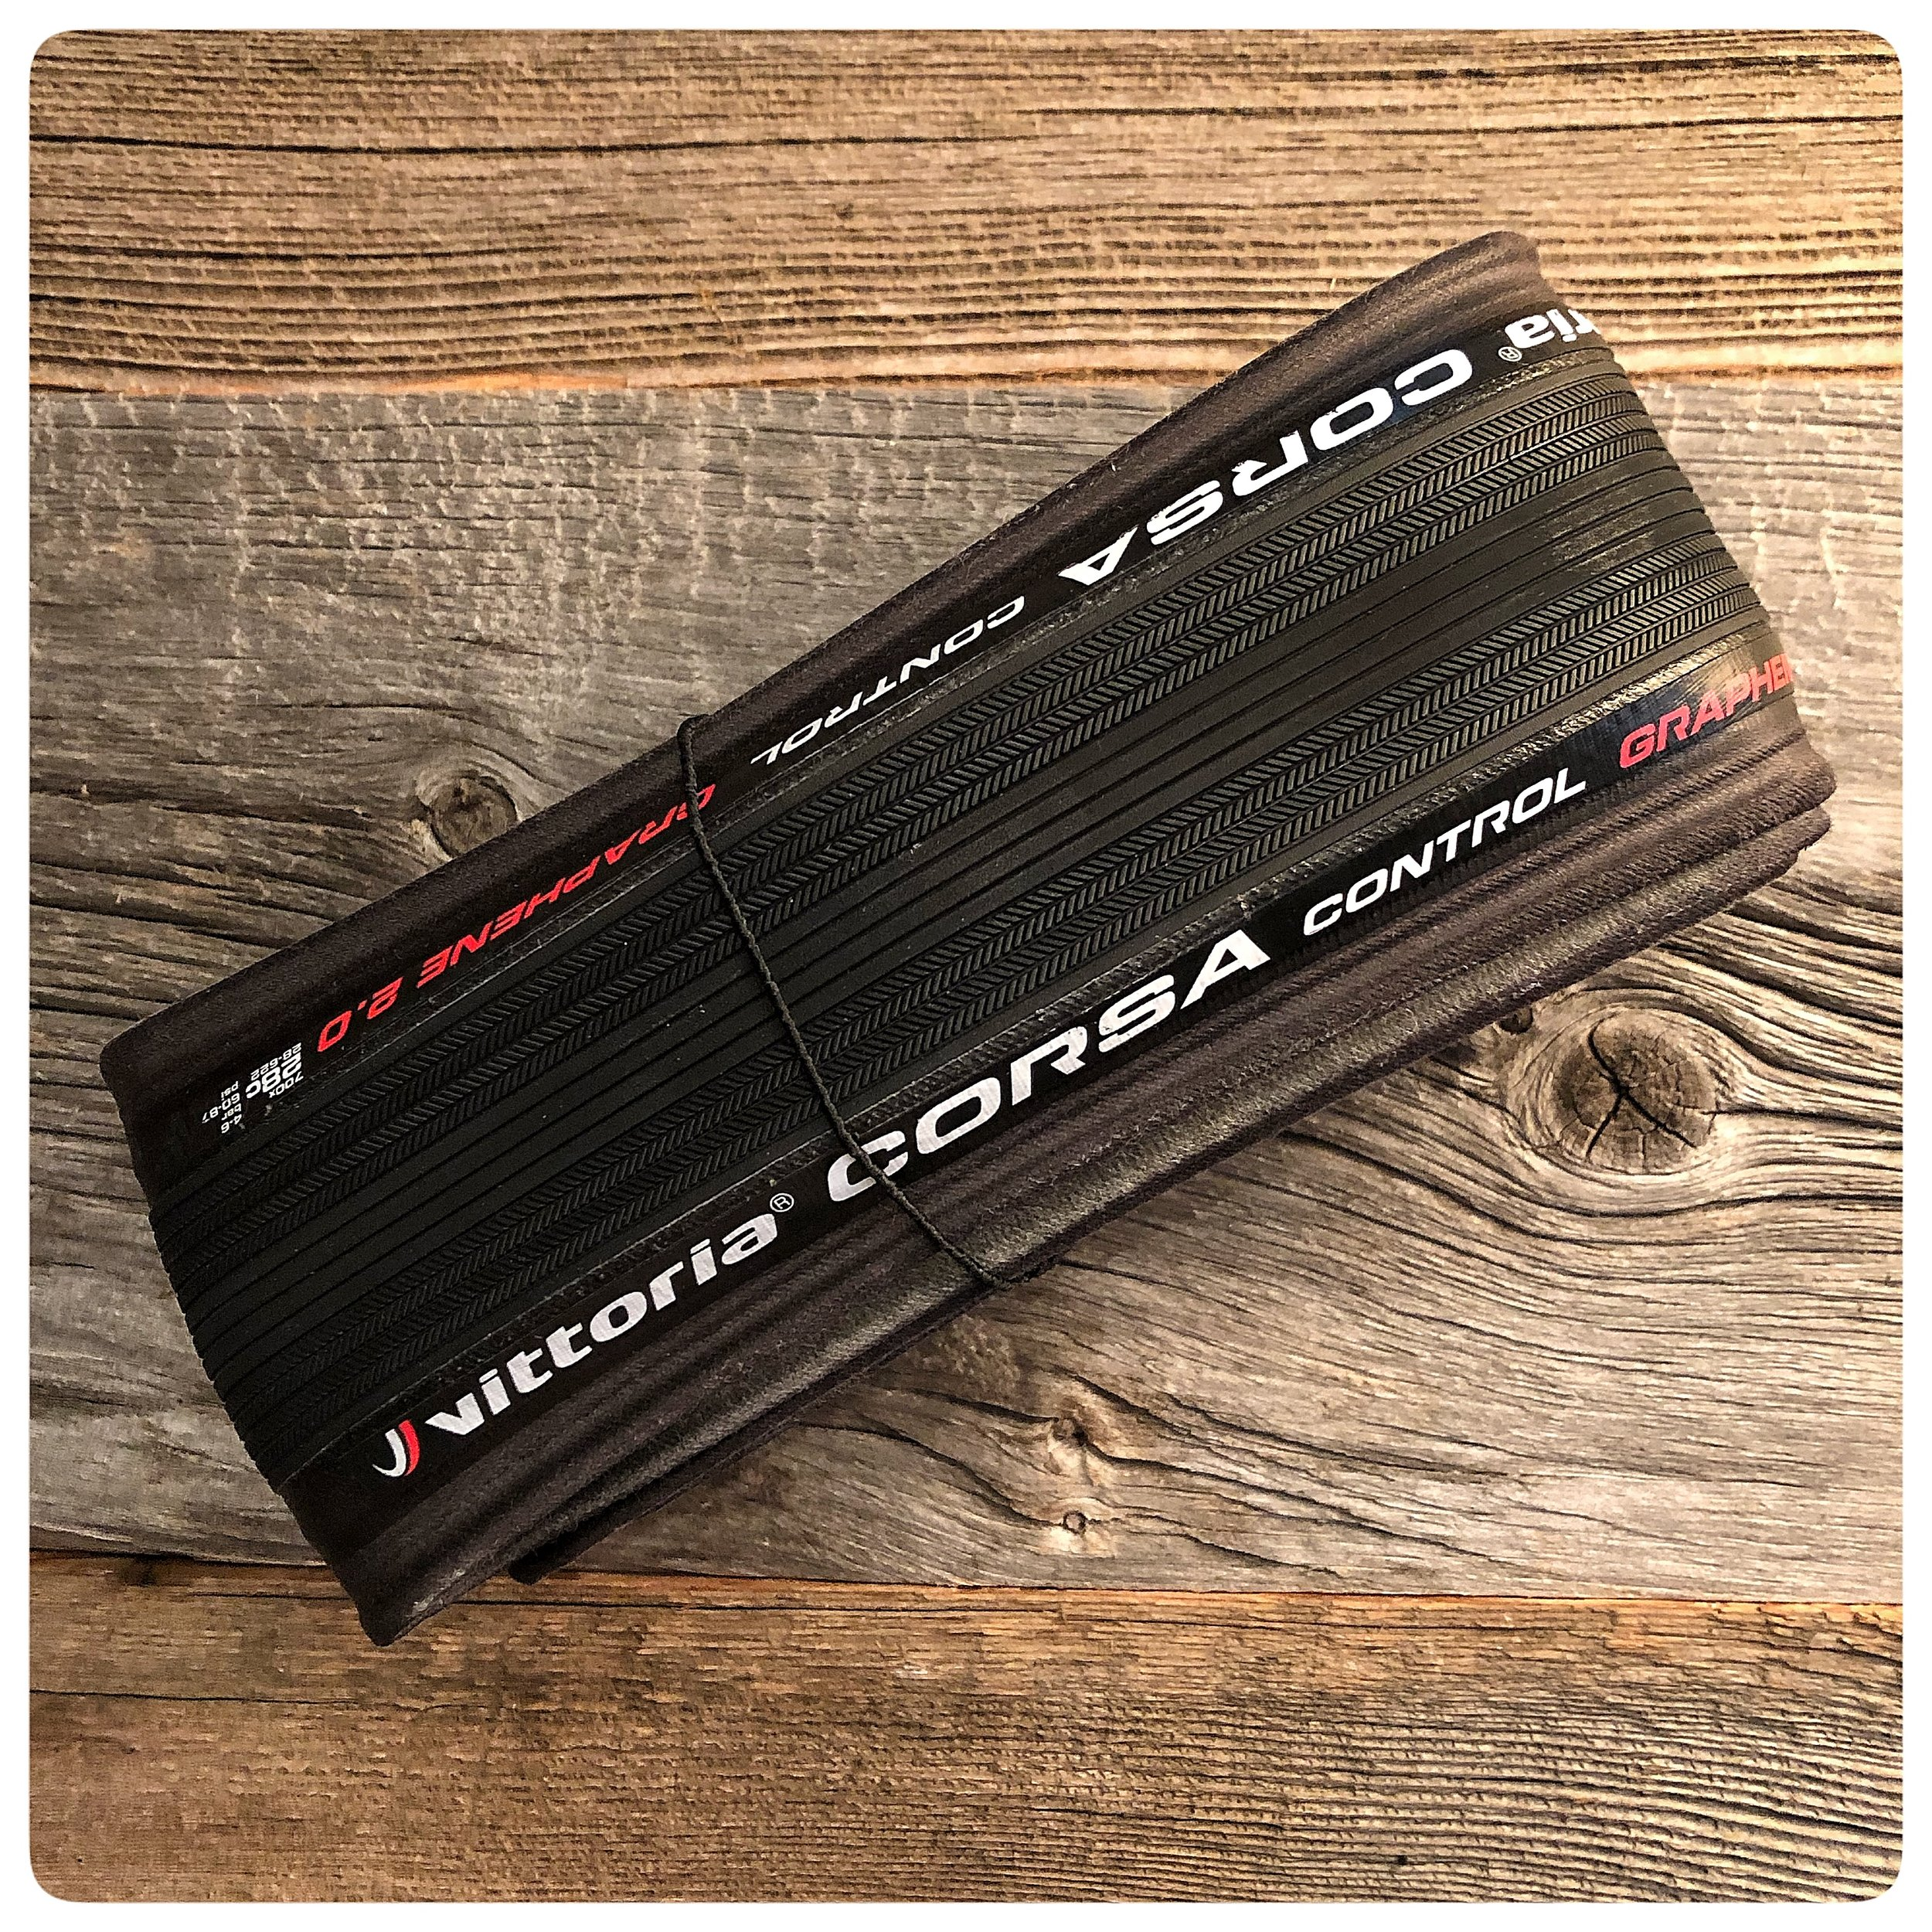 Vittoria's Corsa Control tire. Graphene infused with a 320 TPI cotton casing. Super low rolling resistance and excellent grip. Fast, fast fast!